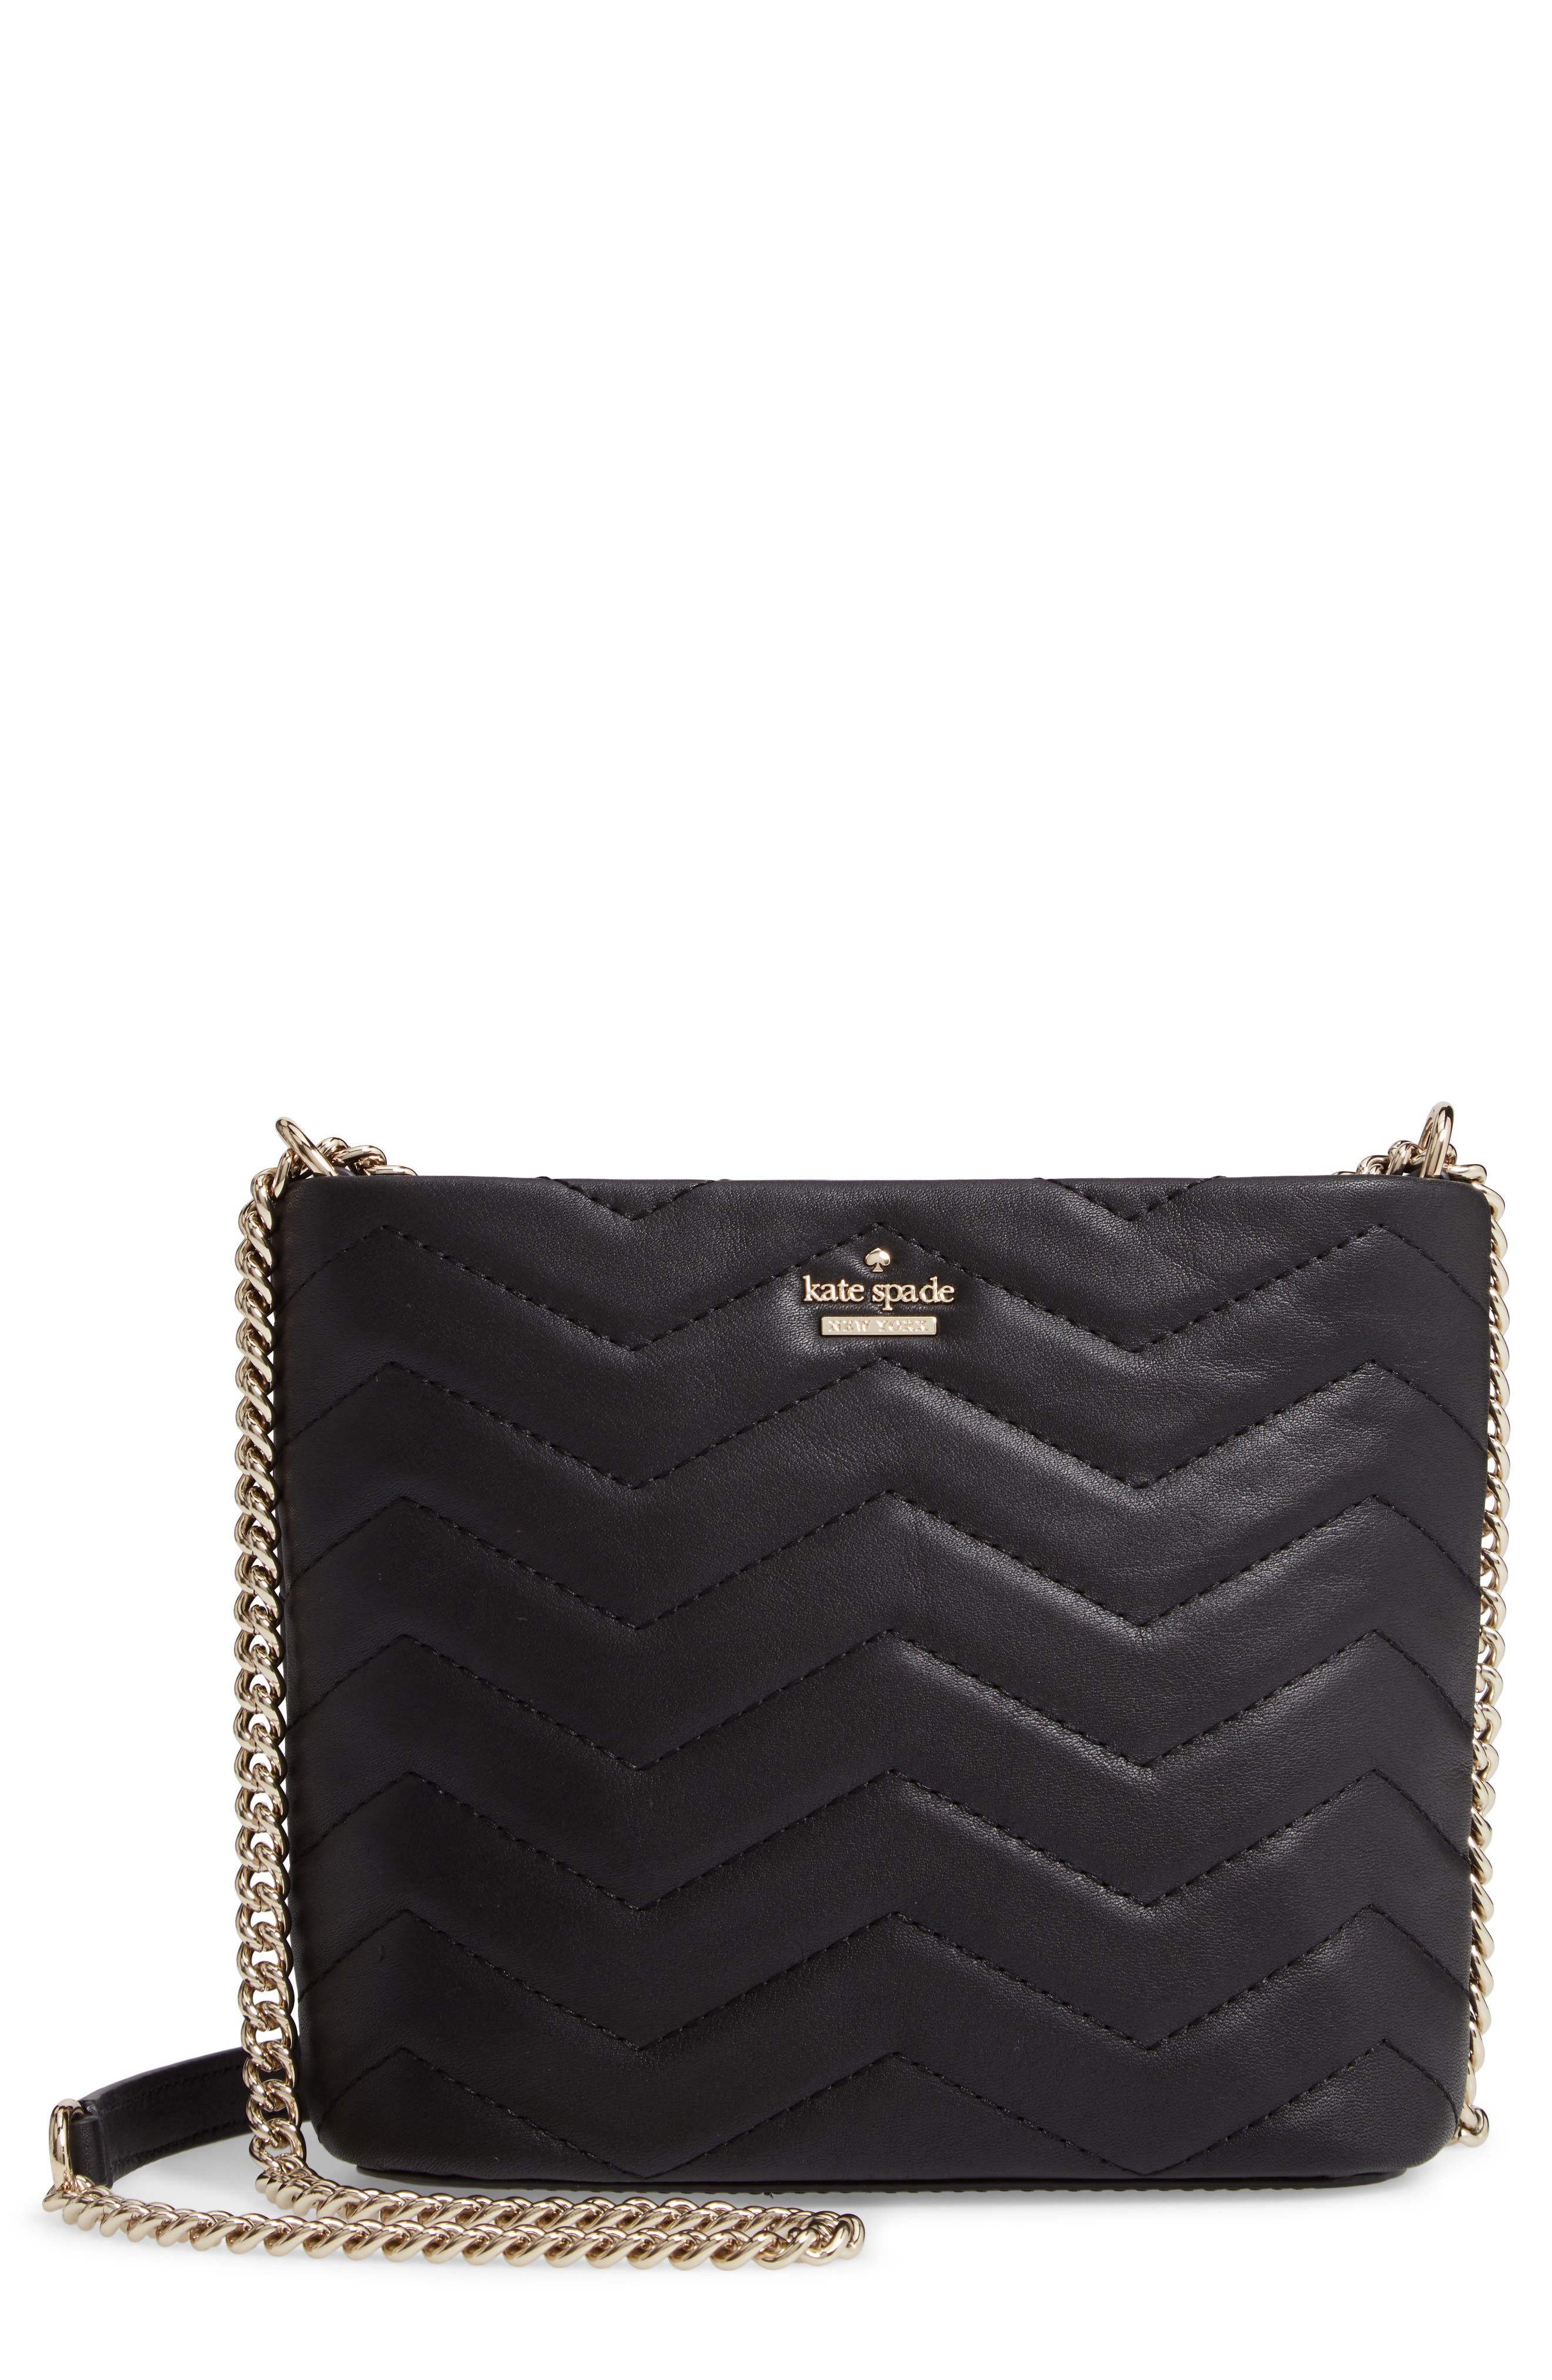 reese park - ellery leather crossbody bag,                             Main thumbnail 1, color,                             BLACK